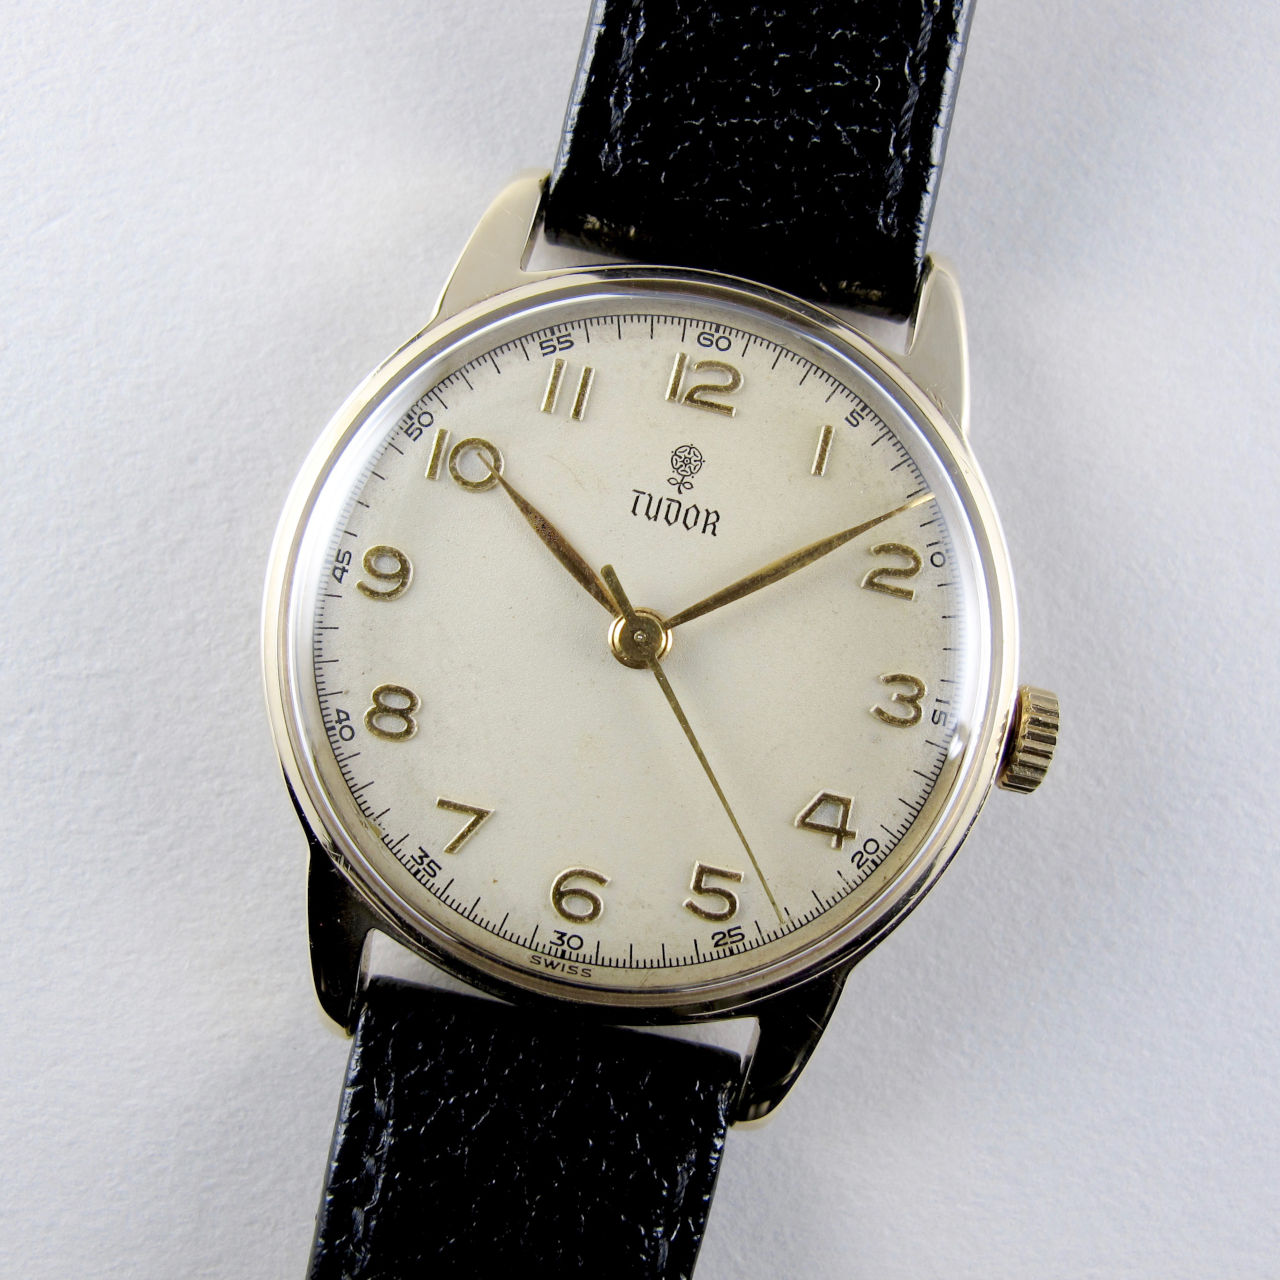 Tudor 'Fifteen' gold vintage wristwatch, hallmarked 1955